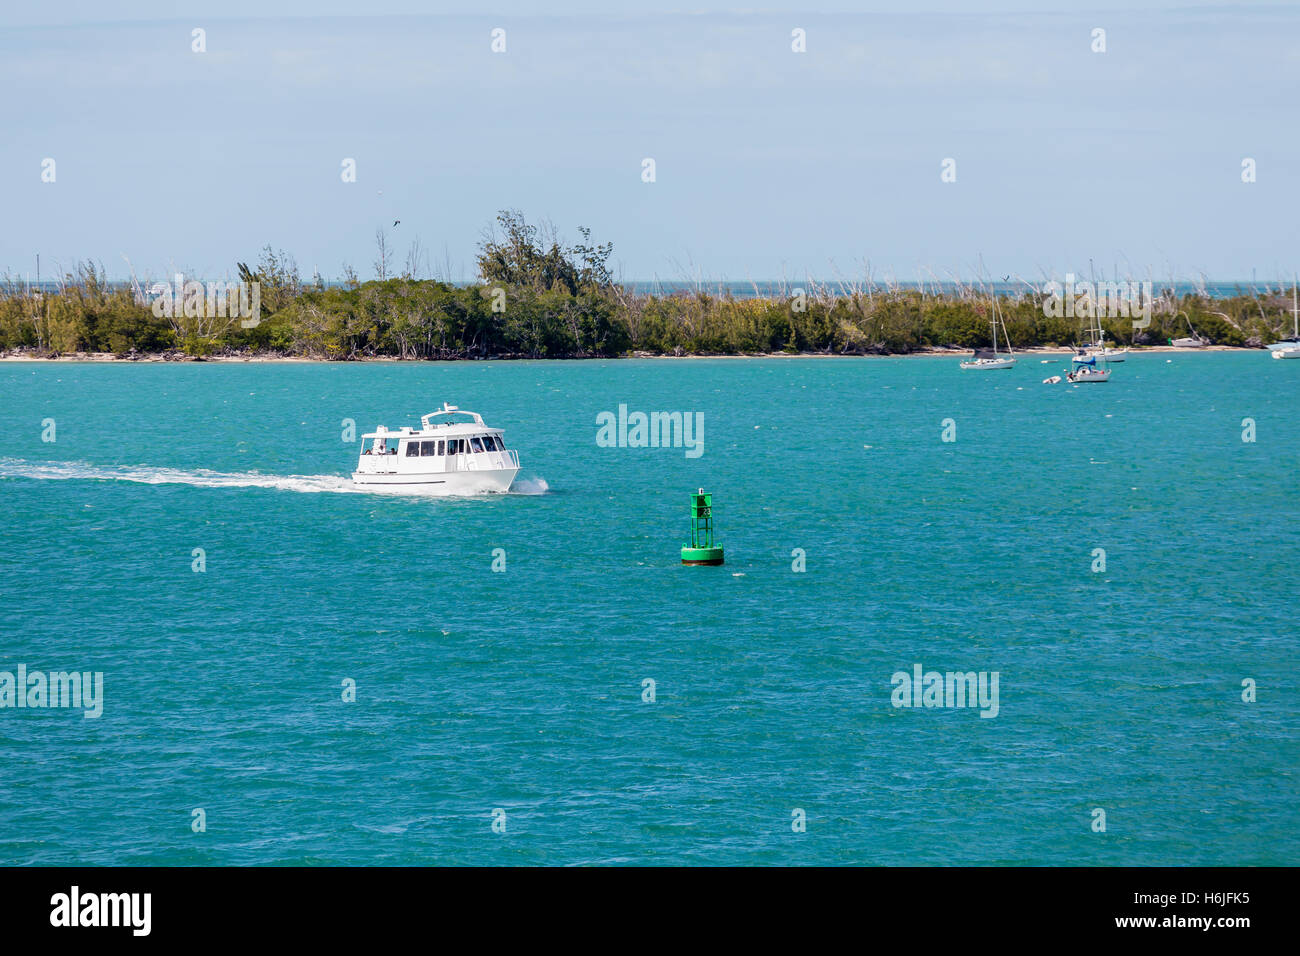 Ferry by Green Channel Marker in Harbor - Stock Image